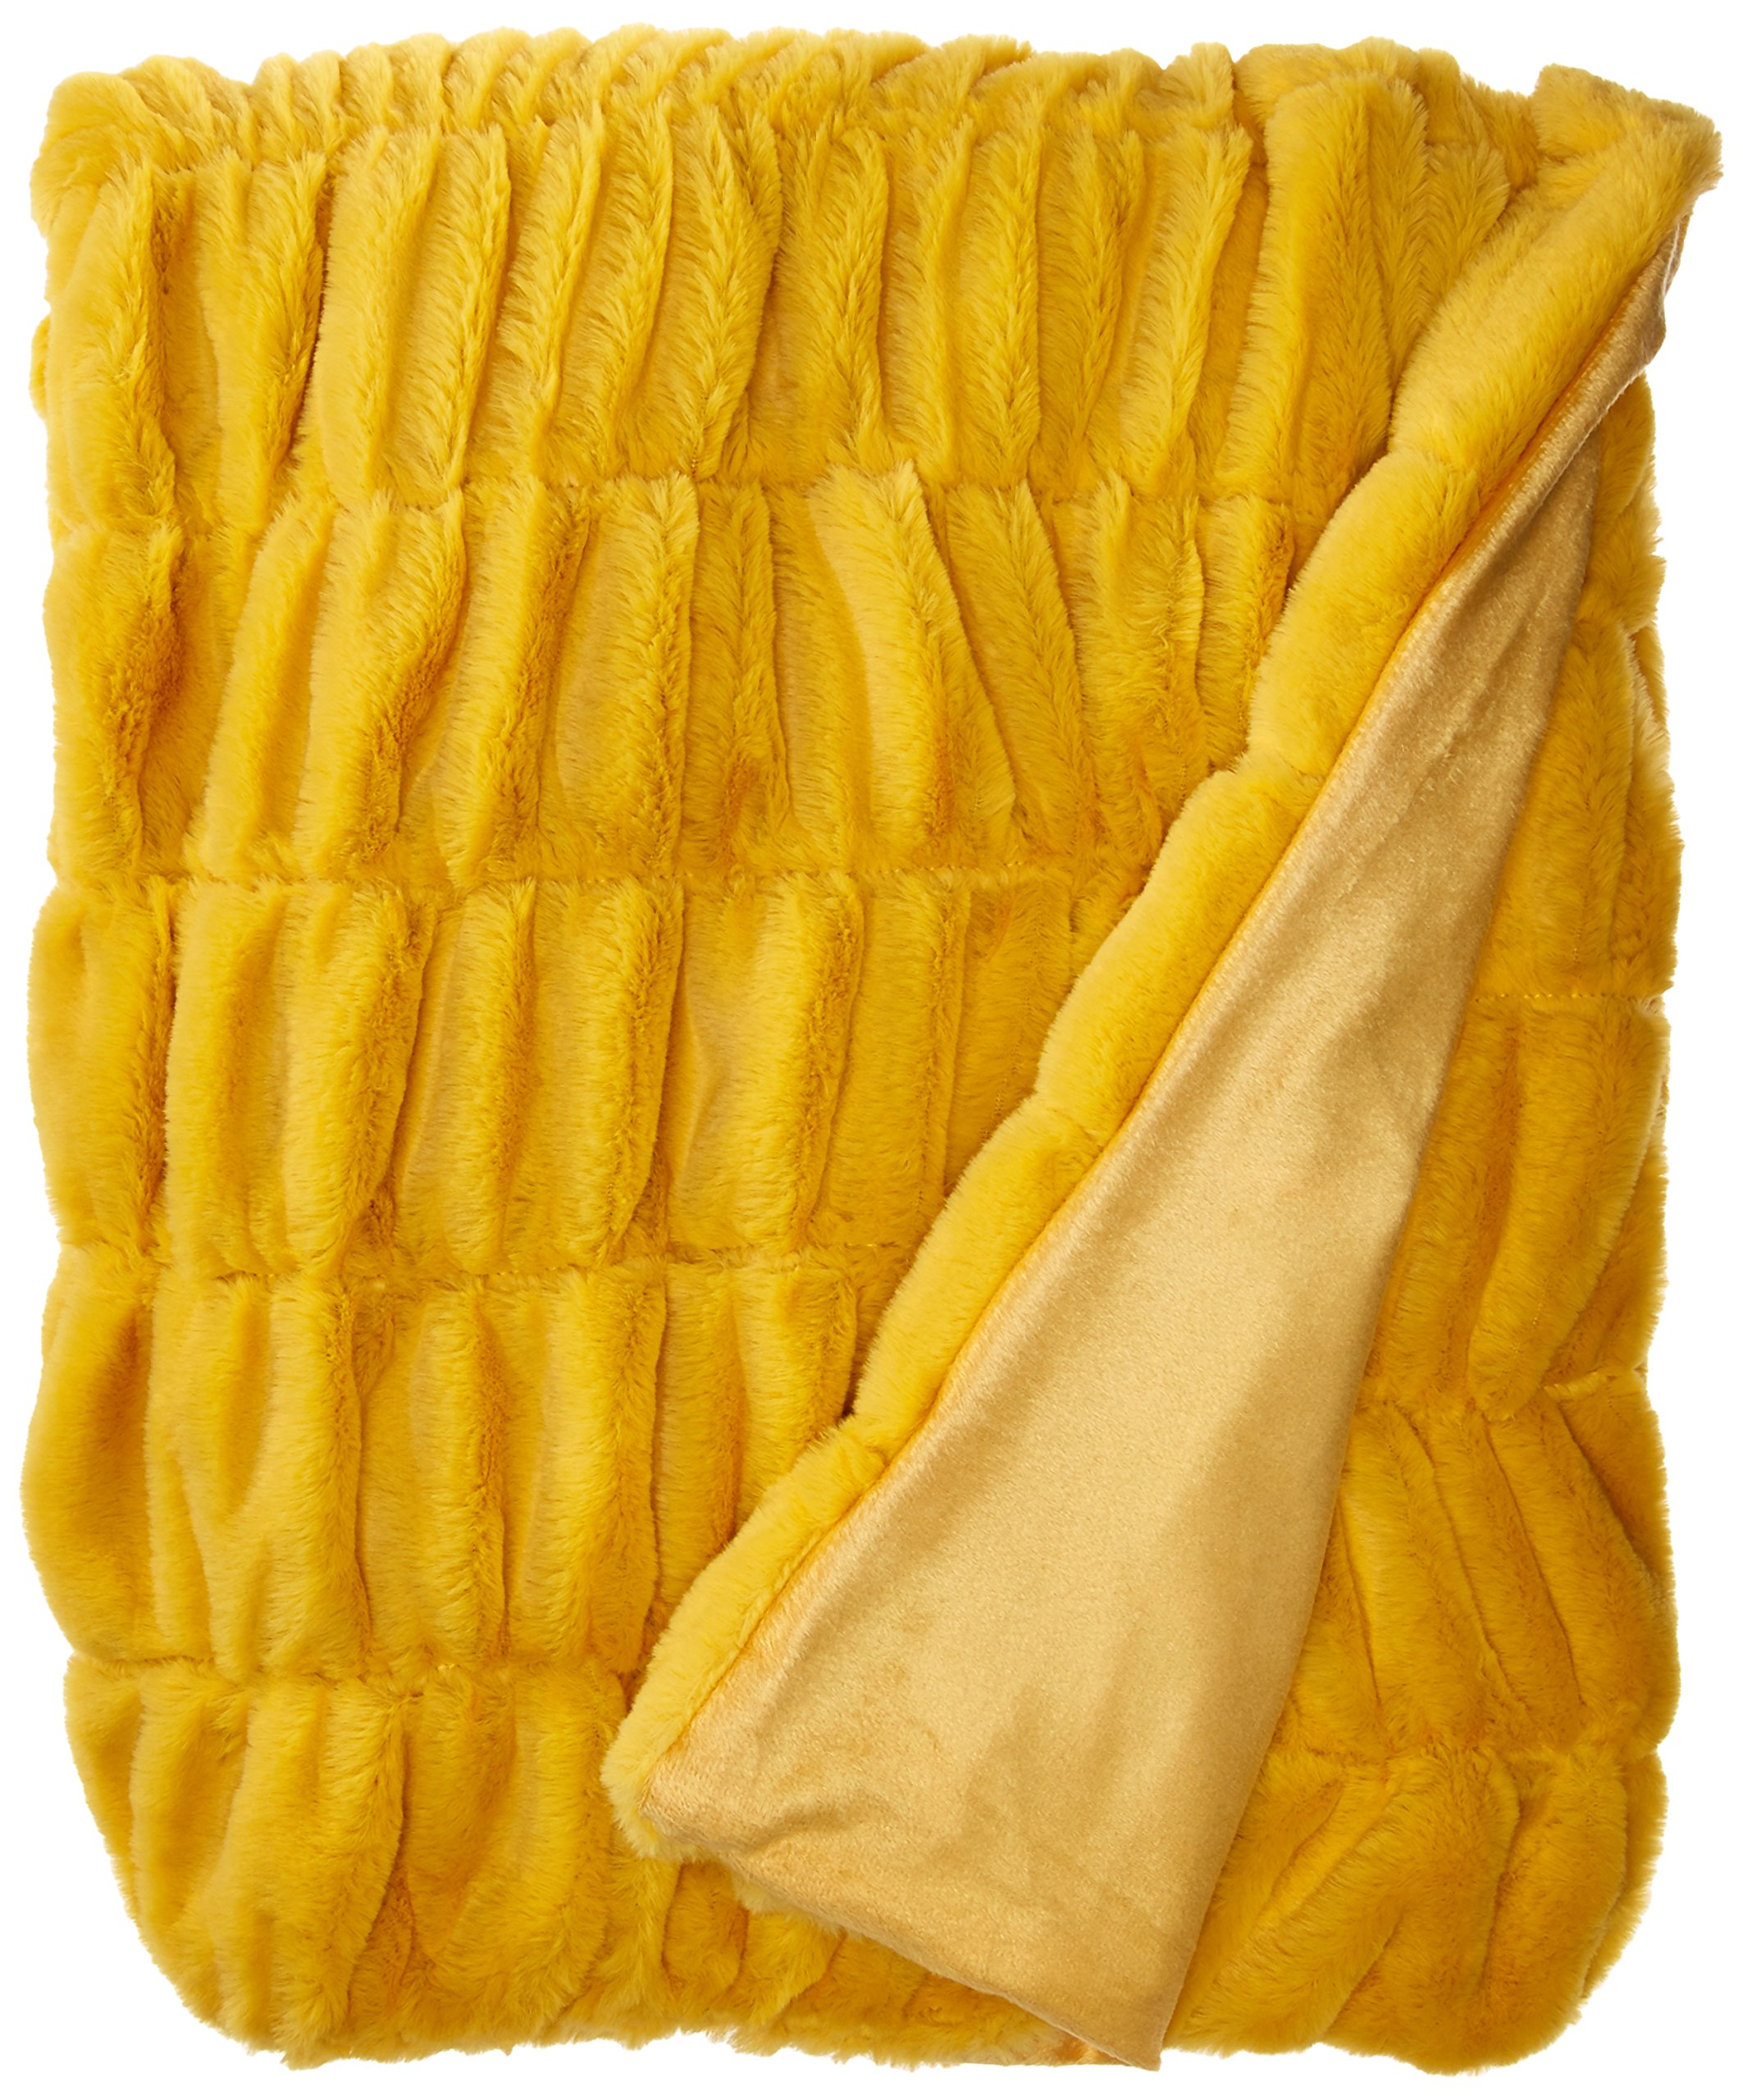 """Chic Home Miera Throw Blanket Cozy Super Soft Ultra Plush Decorative Shaggy Faux Fur with Micromink Backing 50"""" x 60"""", Mustard"""